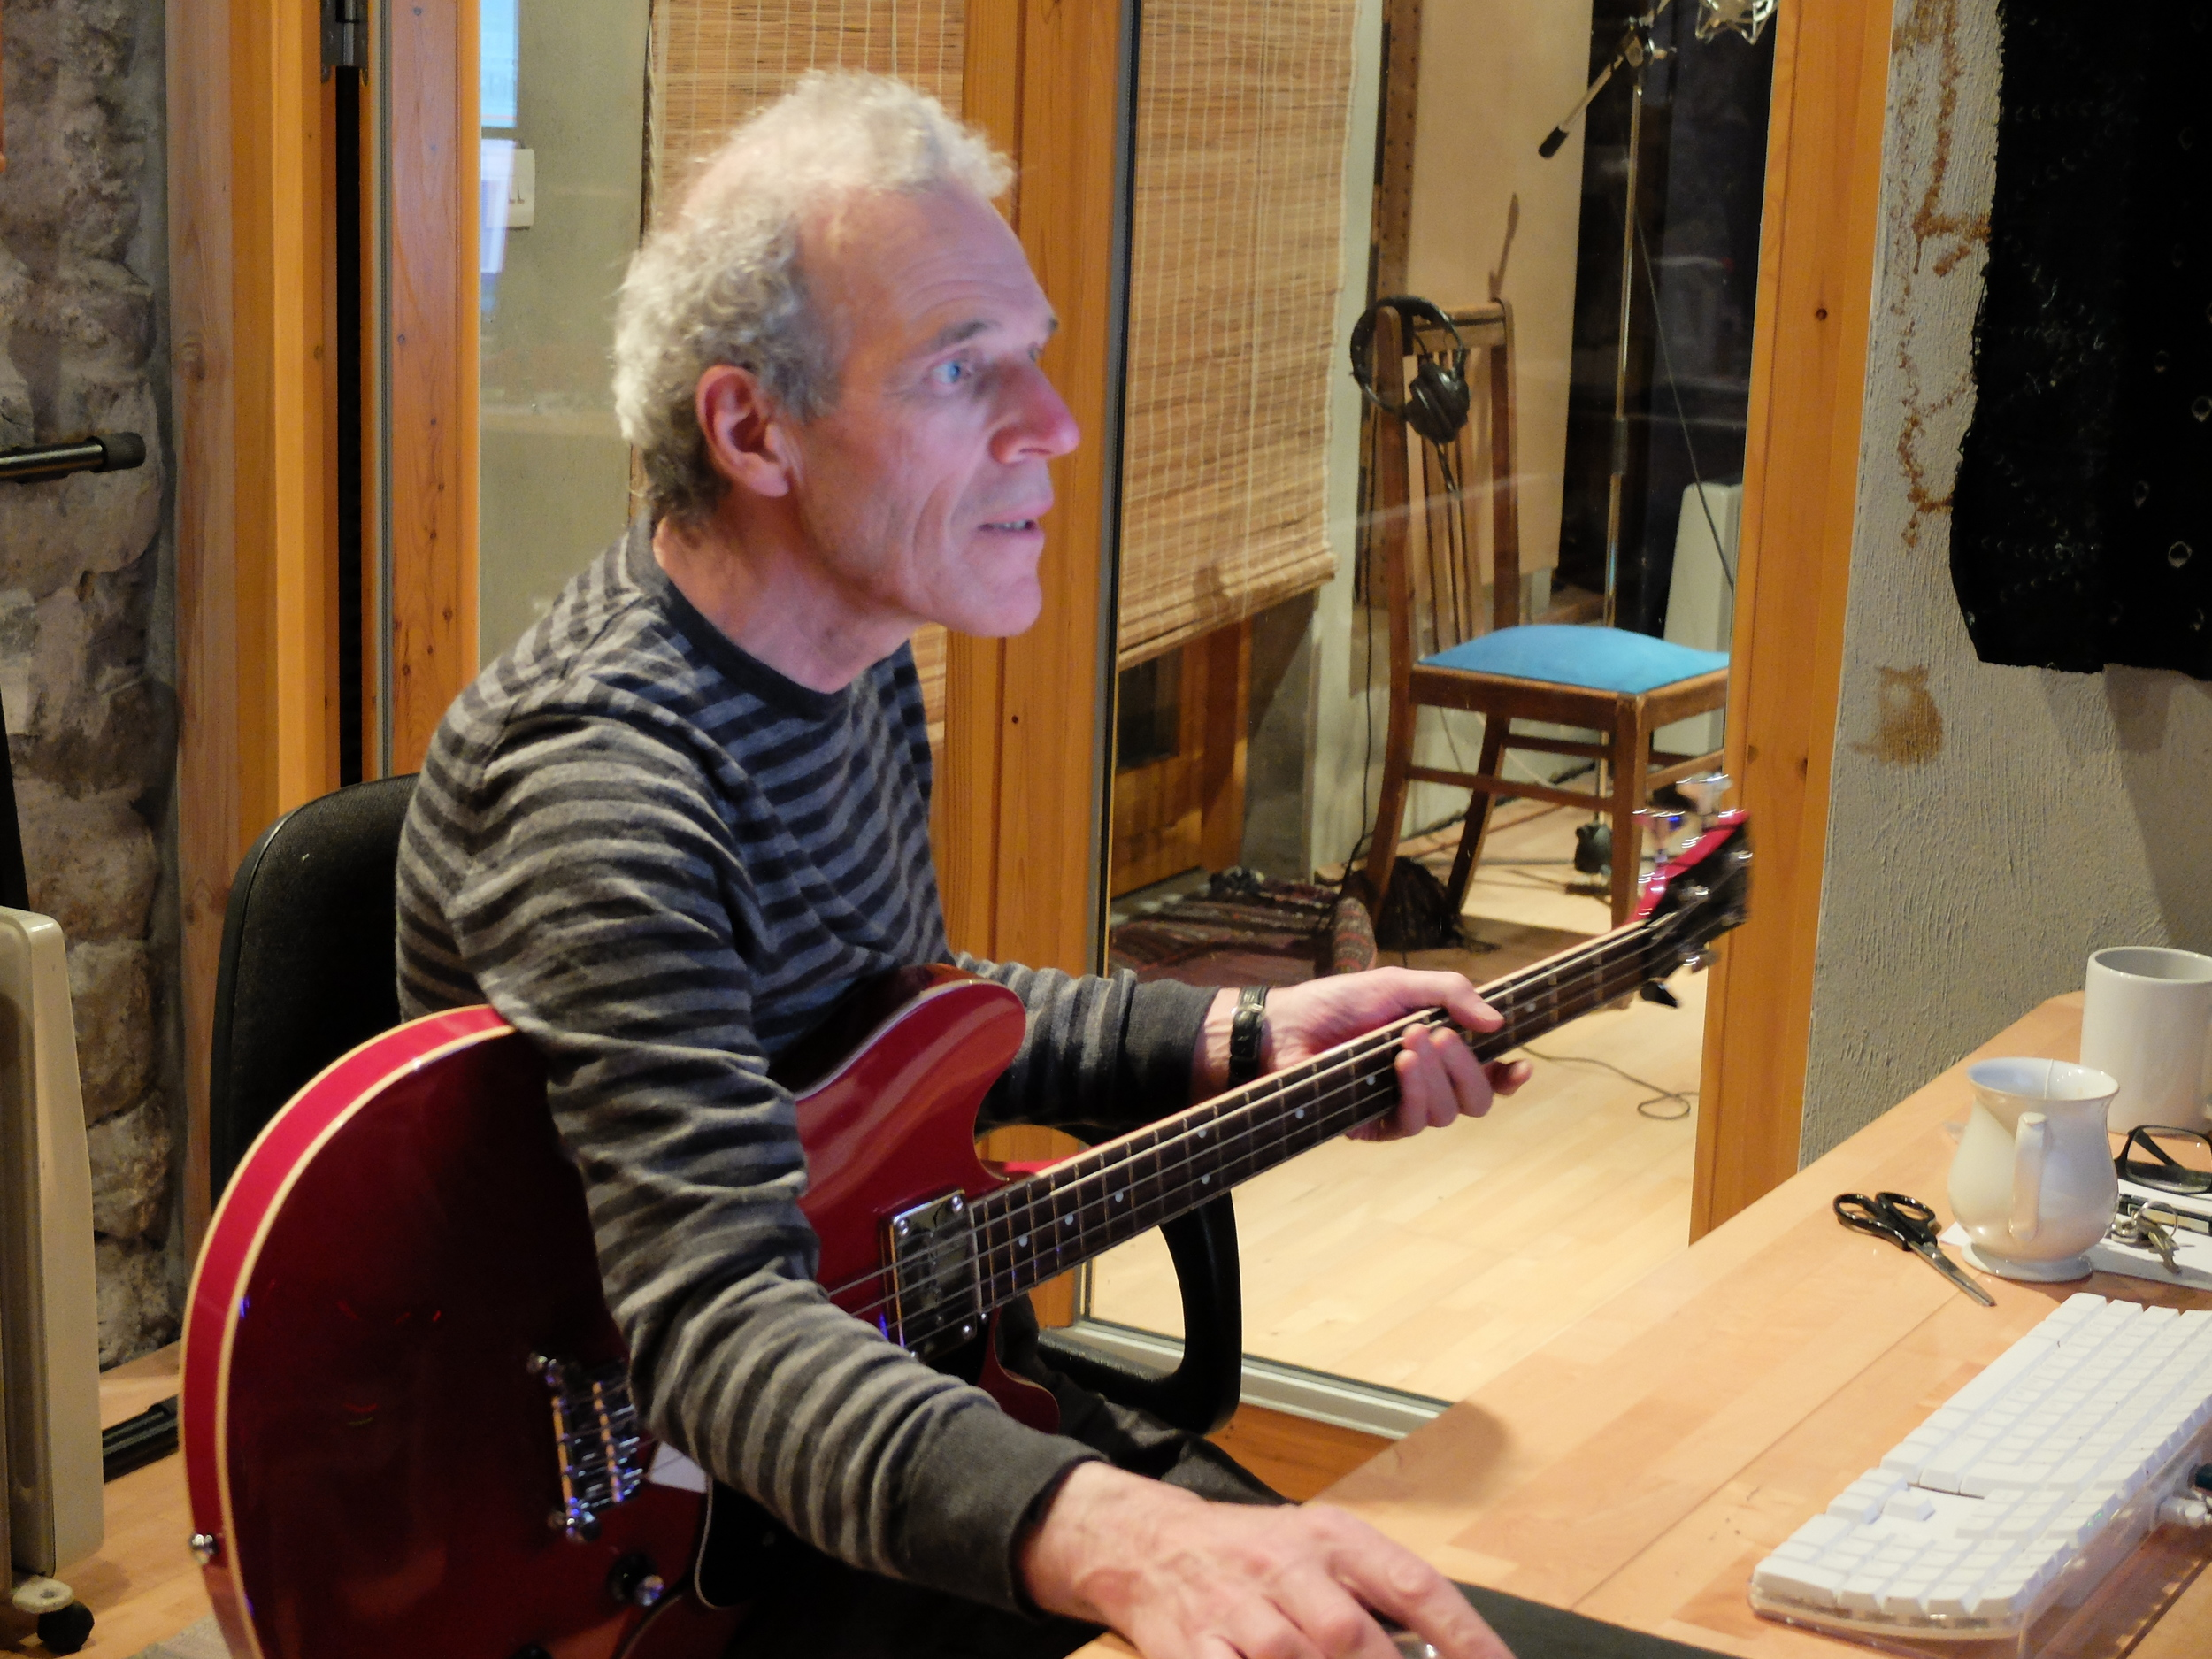 Garry working on the new Buttons & Bows album at his studio in The Burren, Co Clare, April 2015